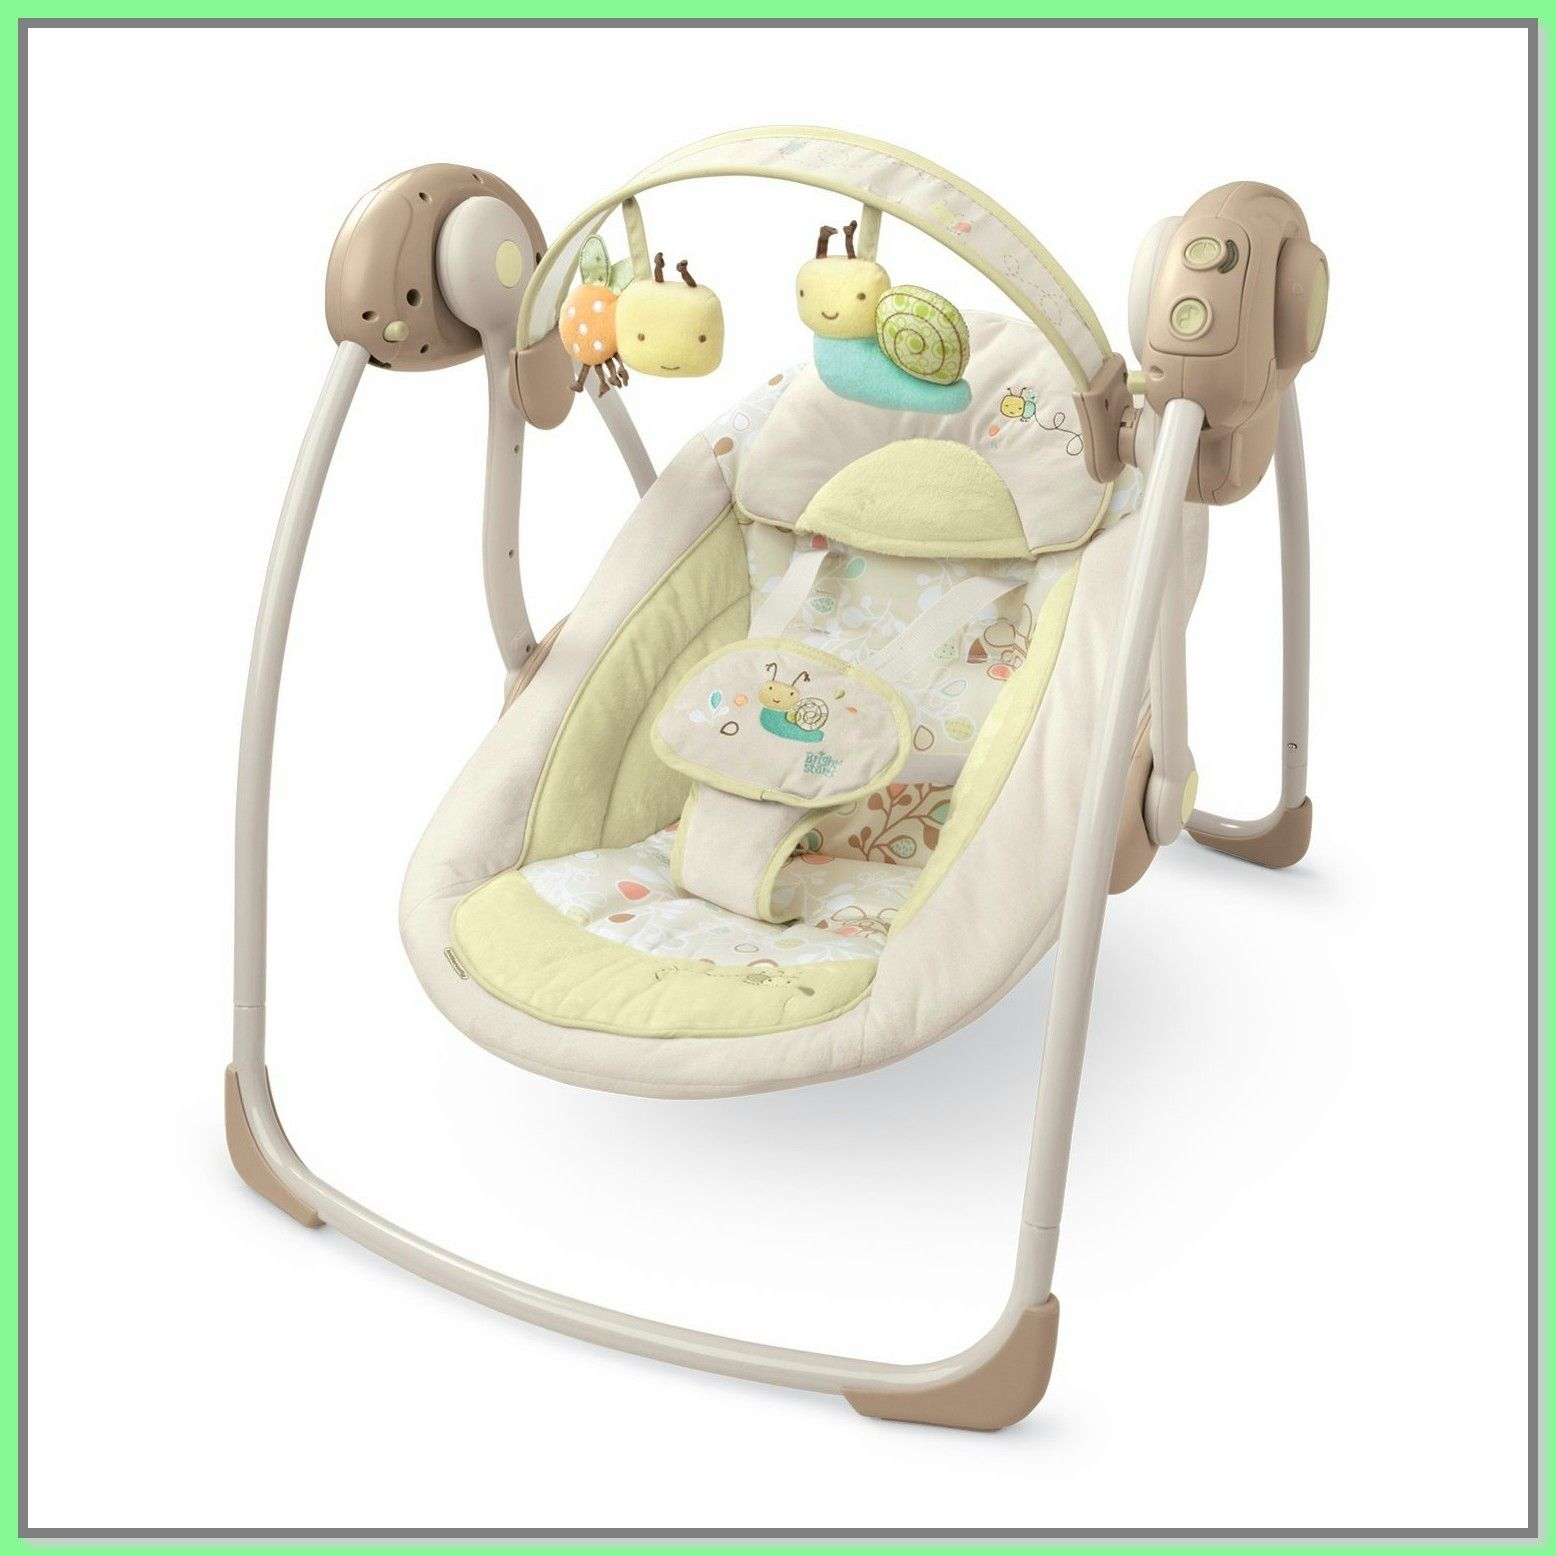 107 Reference Of Baby Swing Chair Newborn In 2020 Baby Swing Chair Baby Chair Swinging Chair